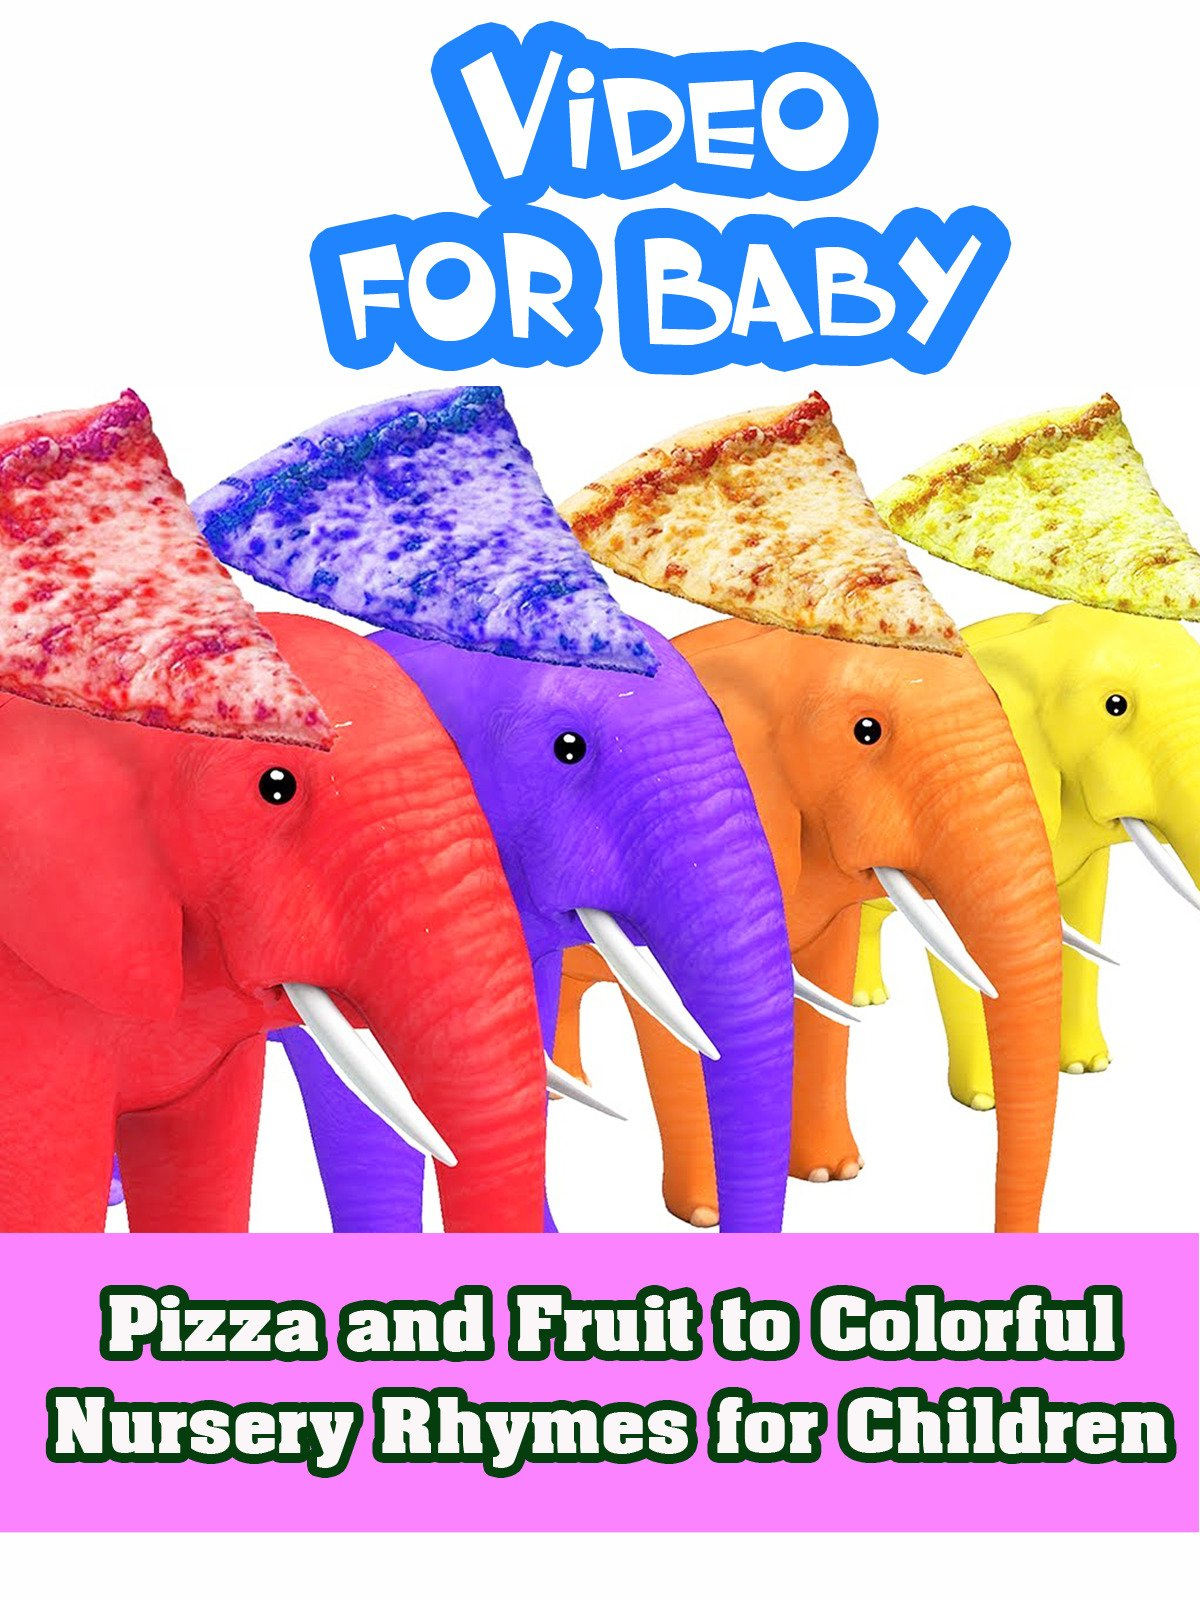 Pizza and Fruit to Colorful Nursery Rhymes for Children on Amazon Prime Instant Video UK